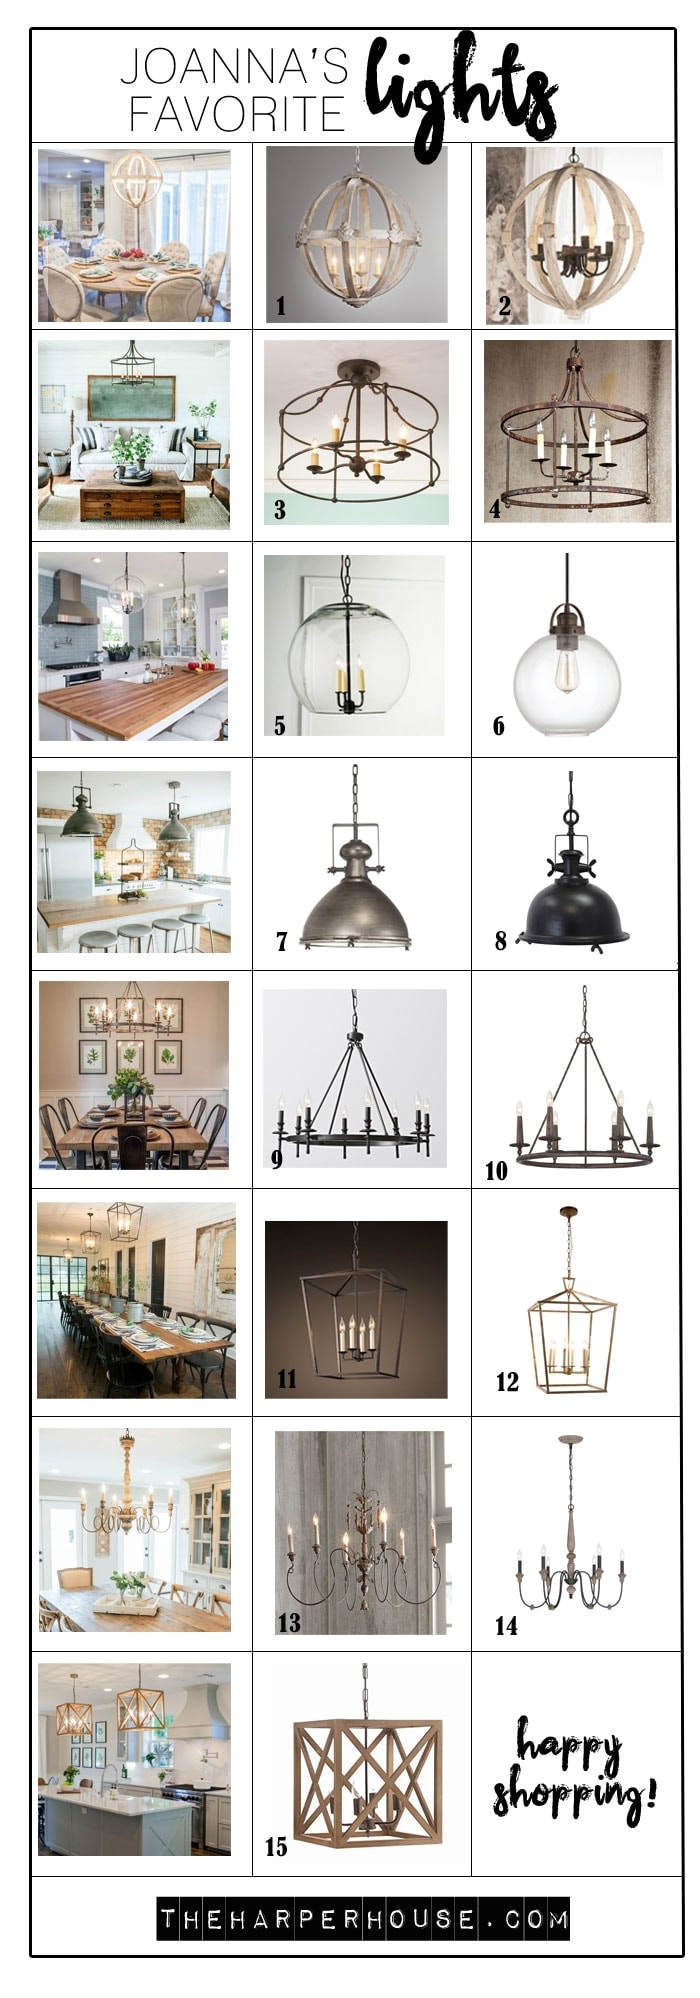 Joannas favorite light fixtures for fixer upper style the fixer upper lights find the exact light fixtures used by joanna gaines on fixer upper arubaitofo Images